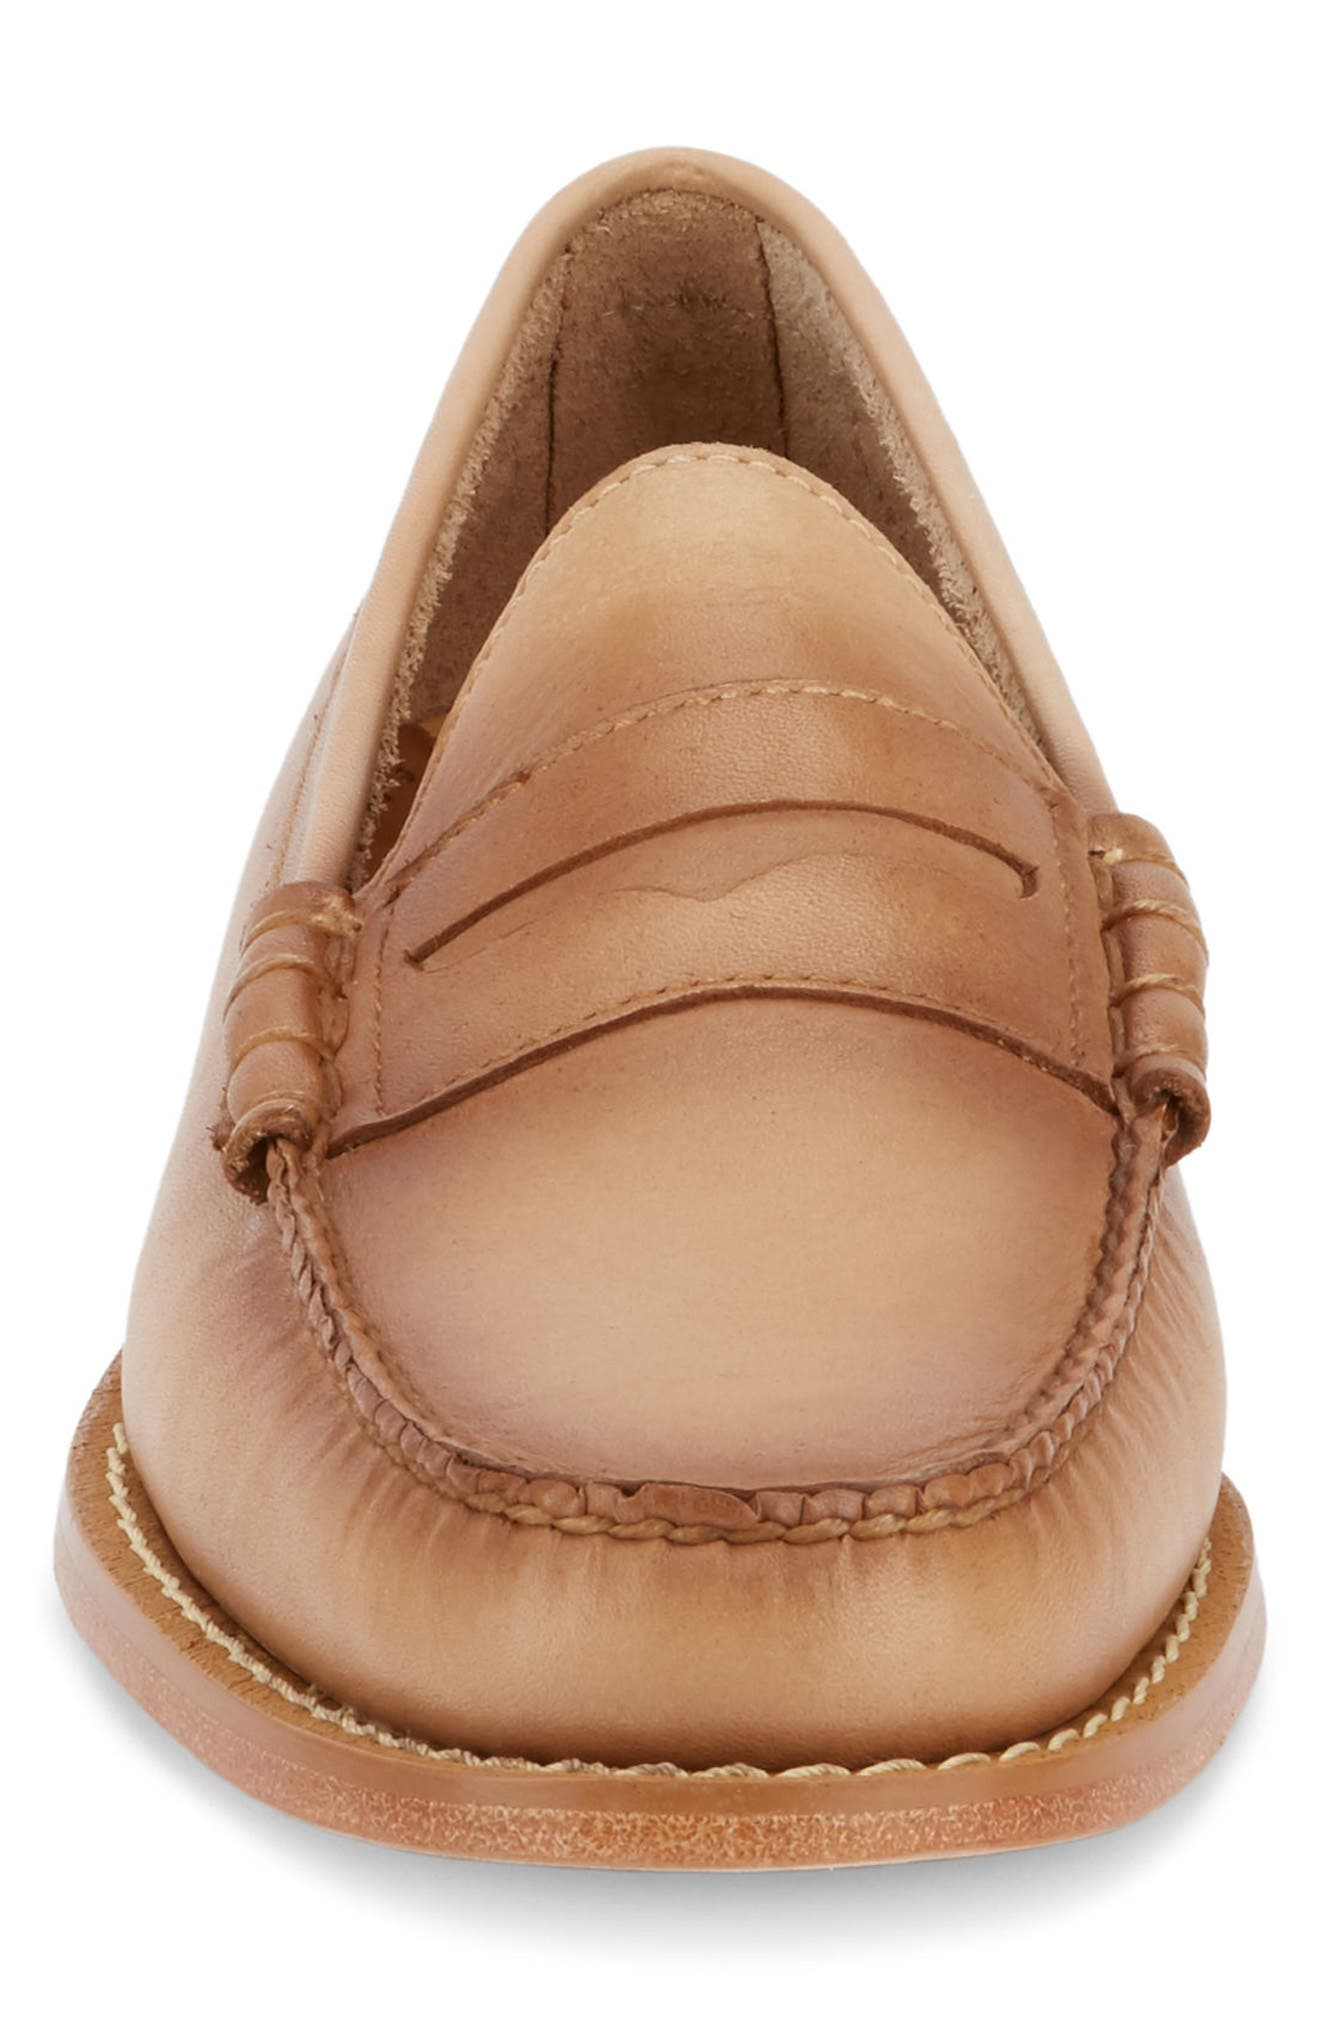 'Larson - Weejuns' Penny Loafer,                             Alternate thumbnail 4, color,                             VACHETTA LEATHER